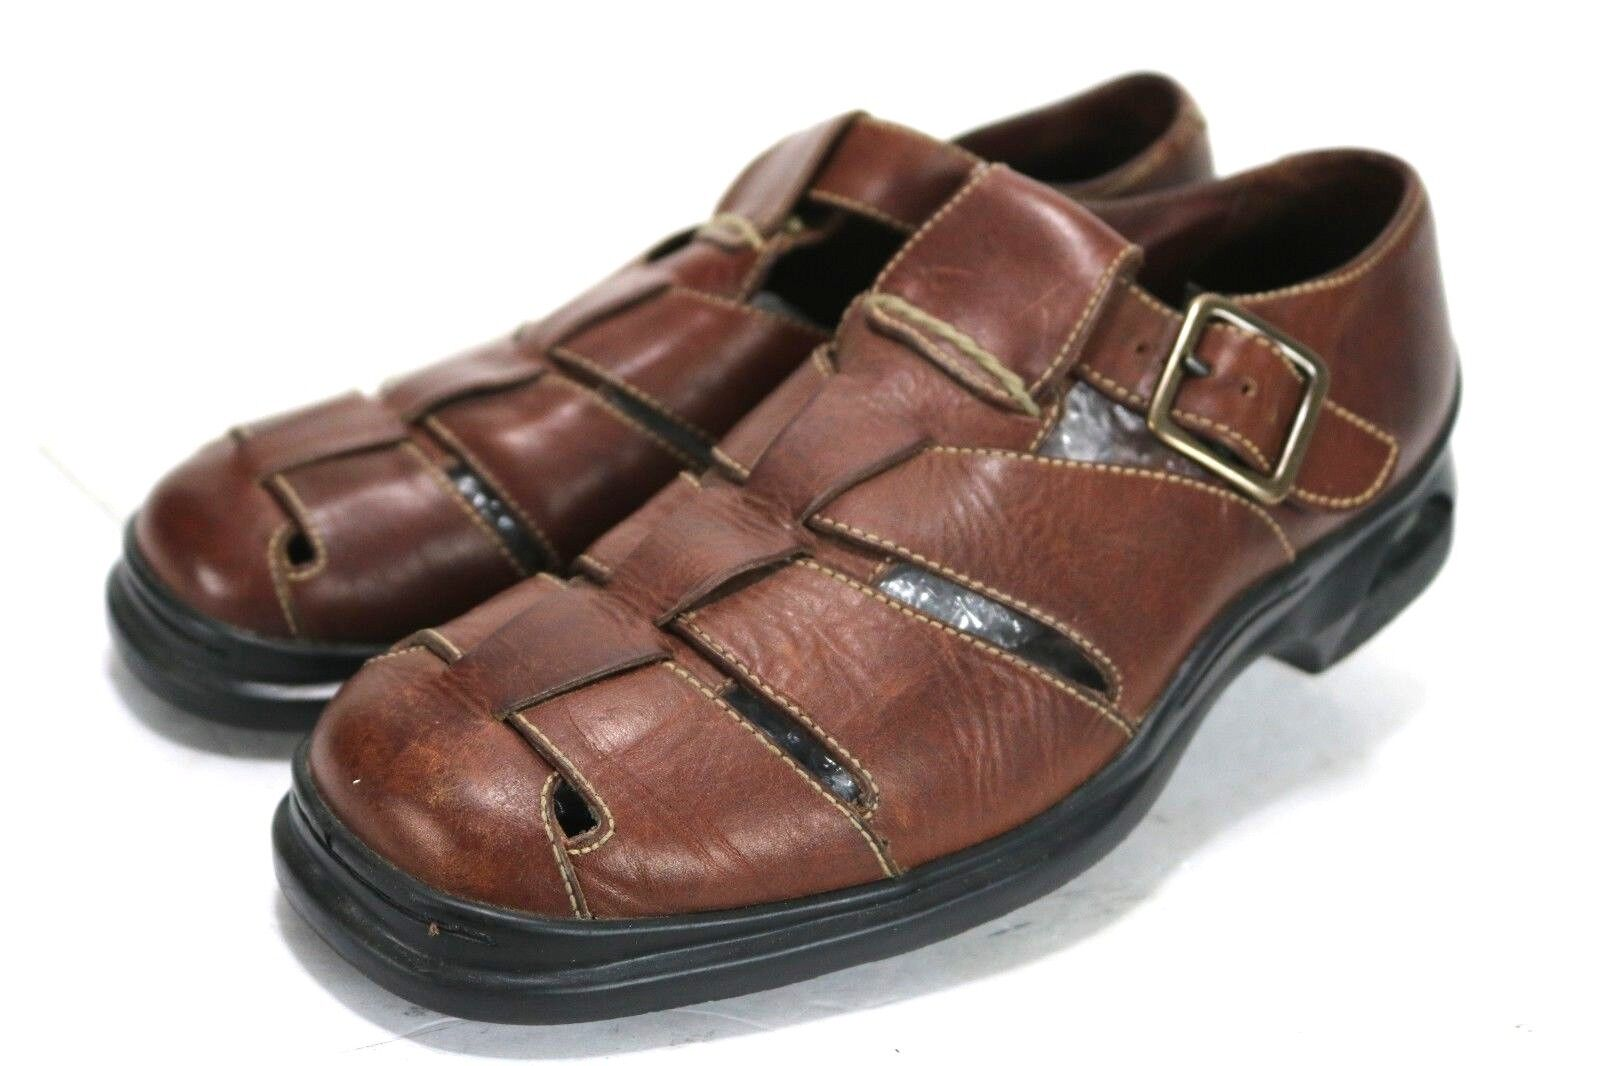 Bragano by Cole Haan  109 Men's Fisherman Sandals Size 8 Brown Leather